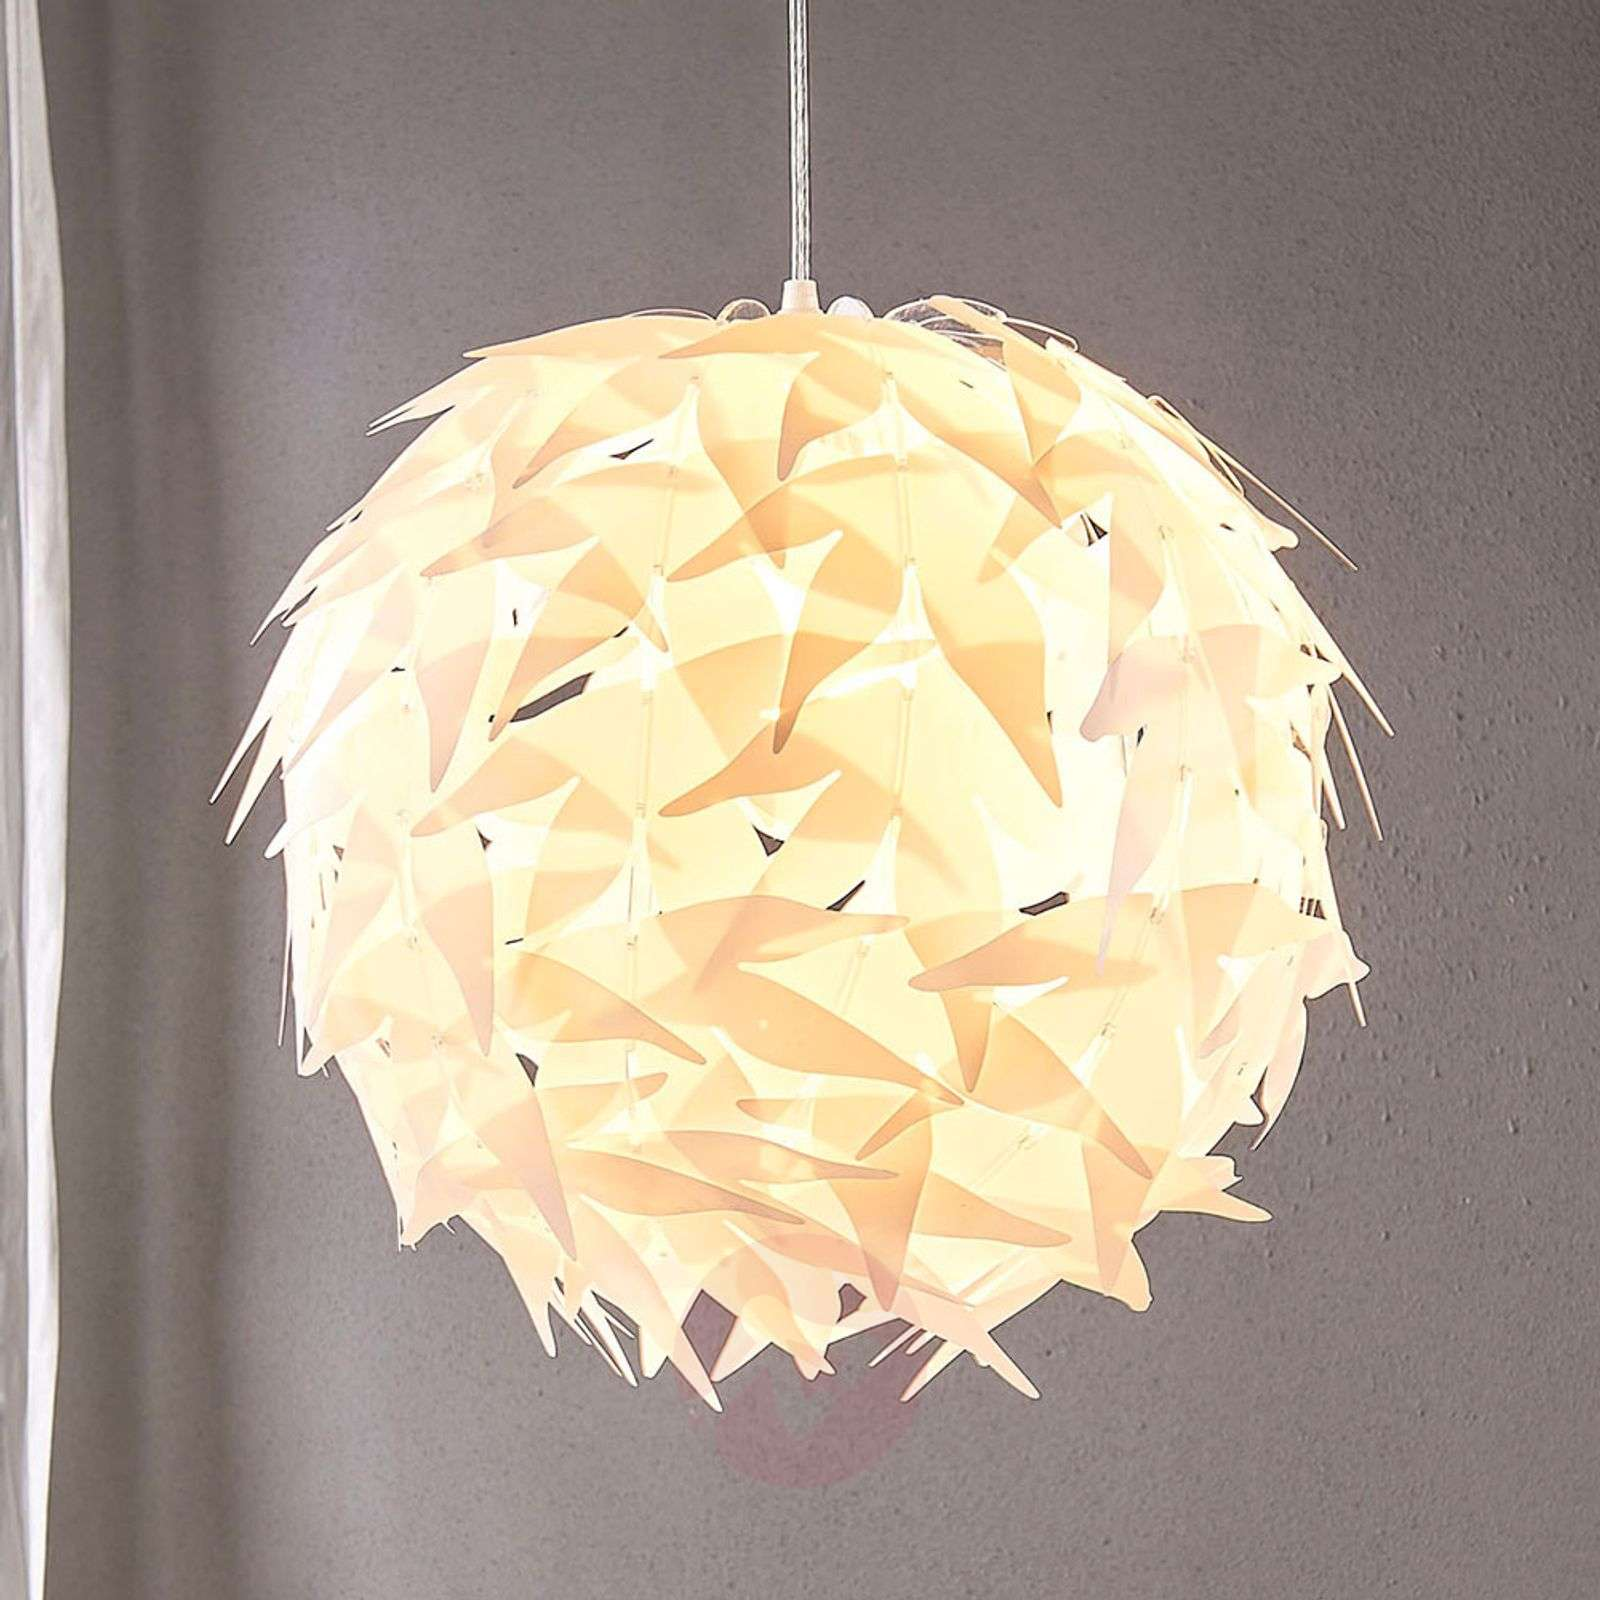 Spherical pendant light Corin in white-9621142-02